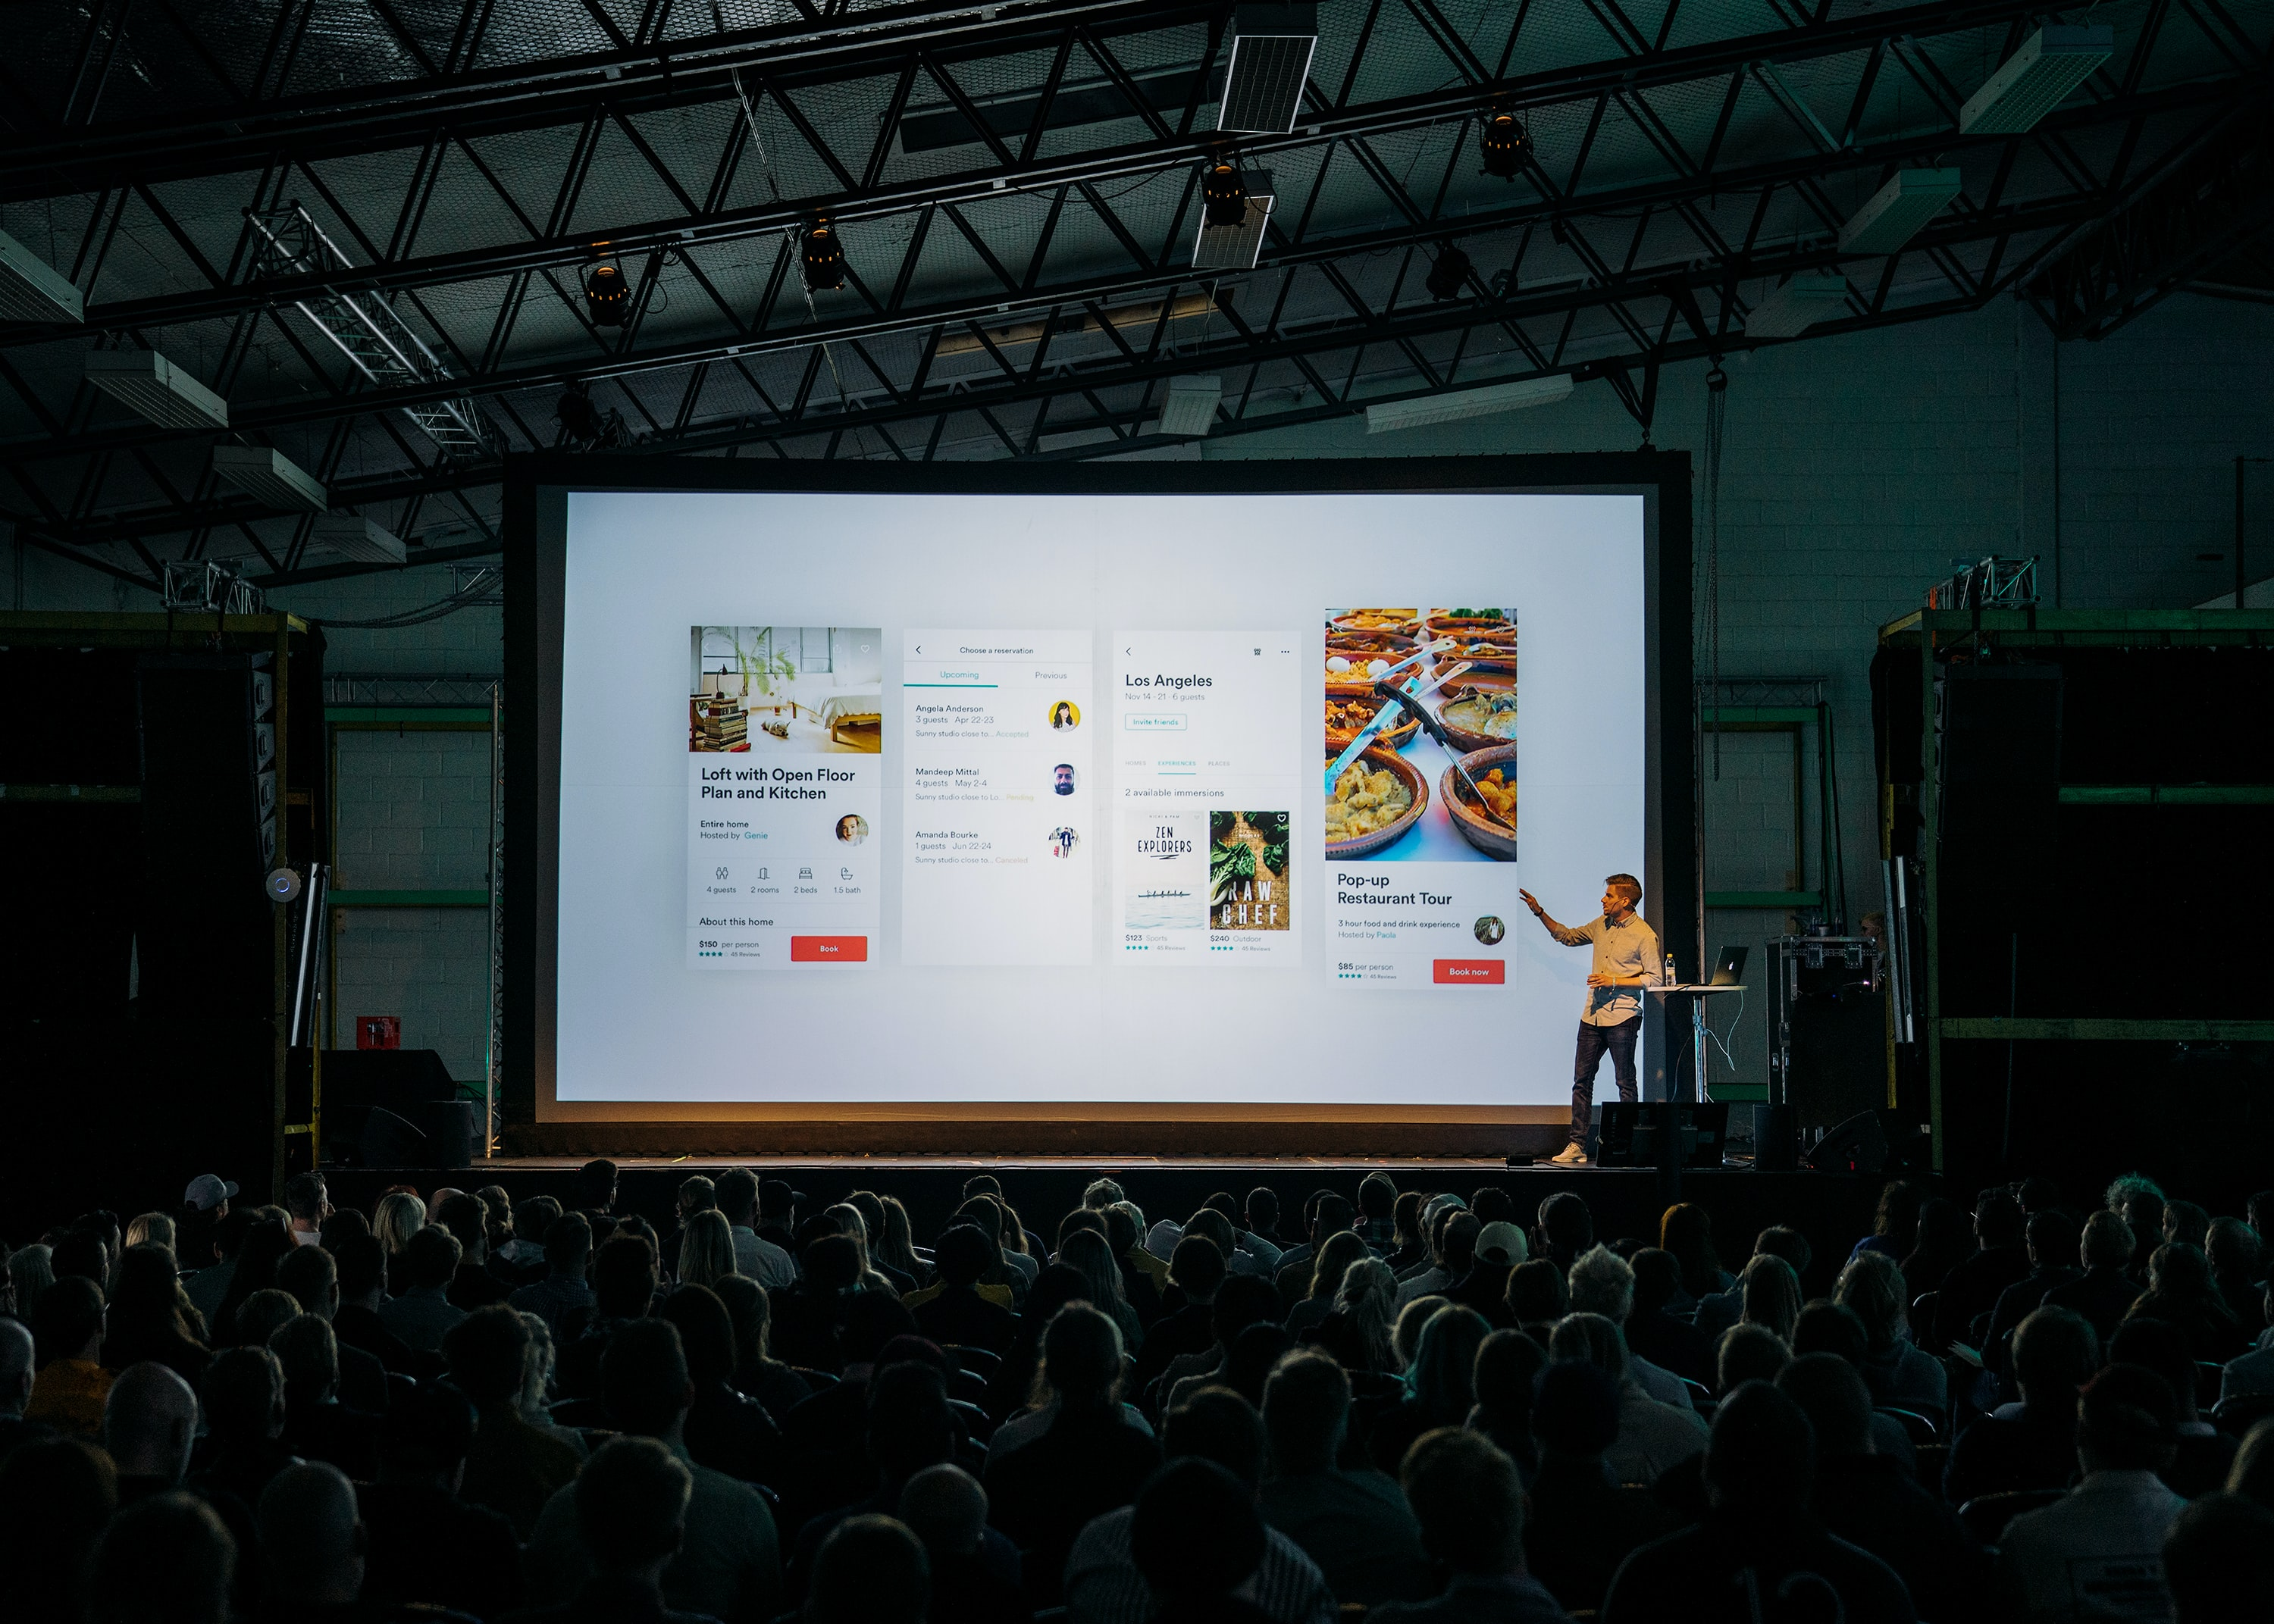 The event industry embraces the virtual